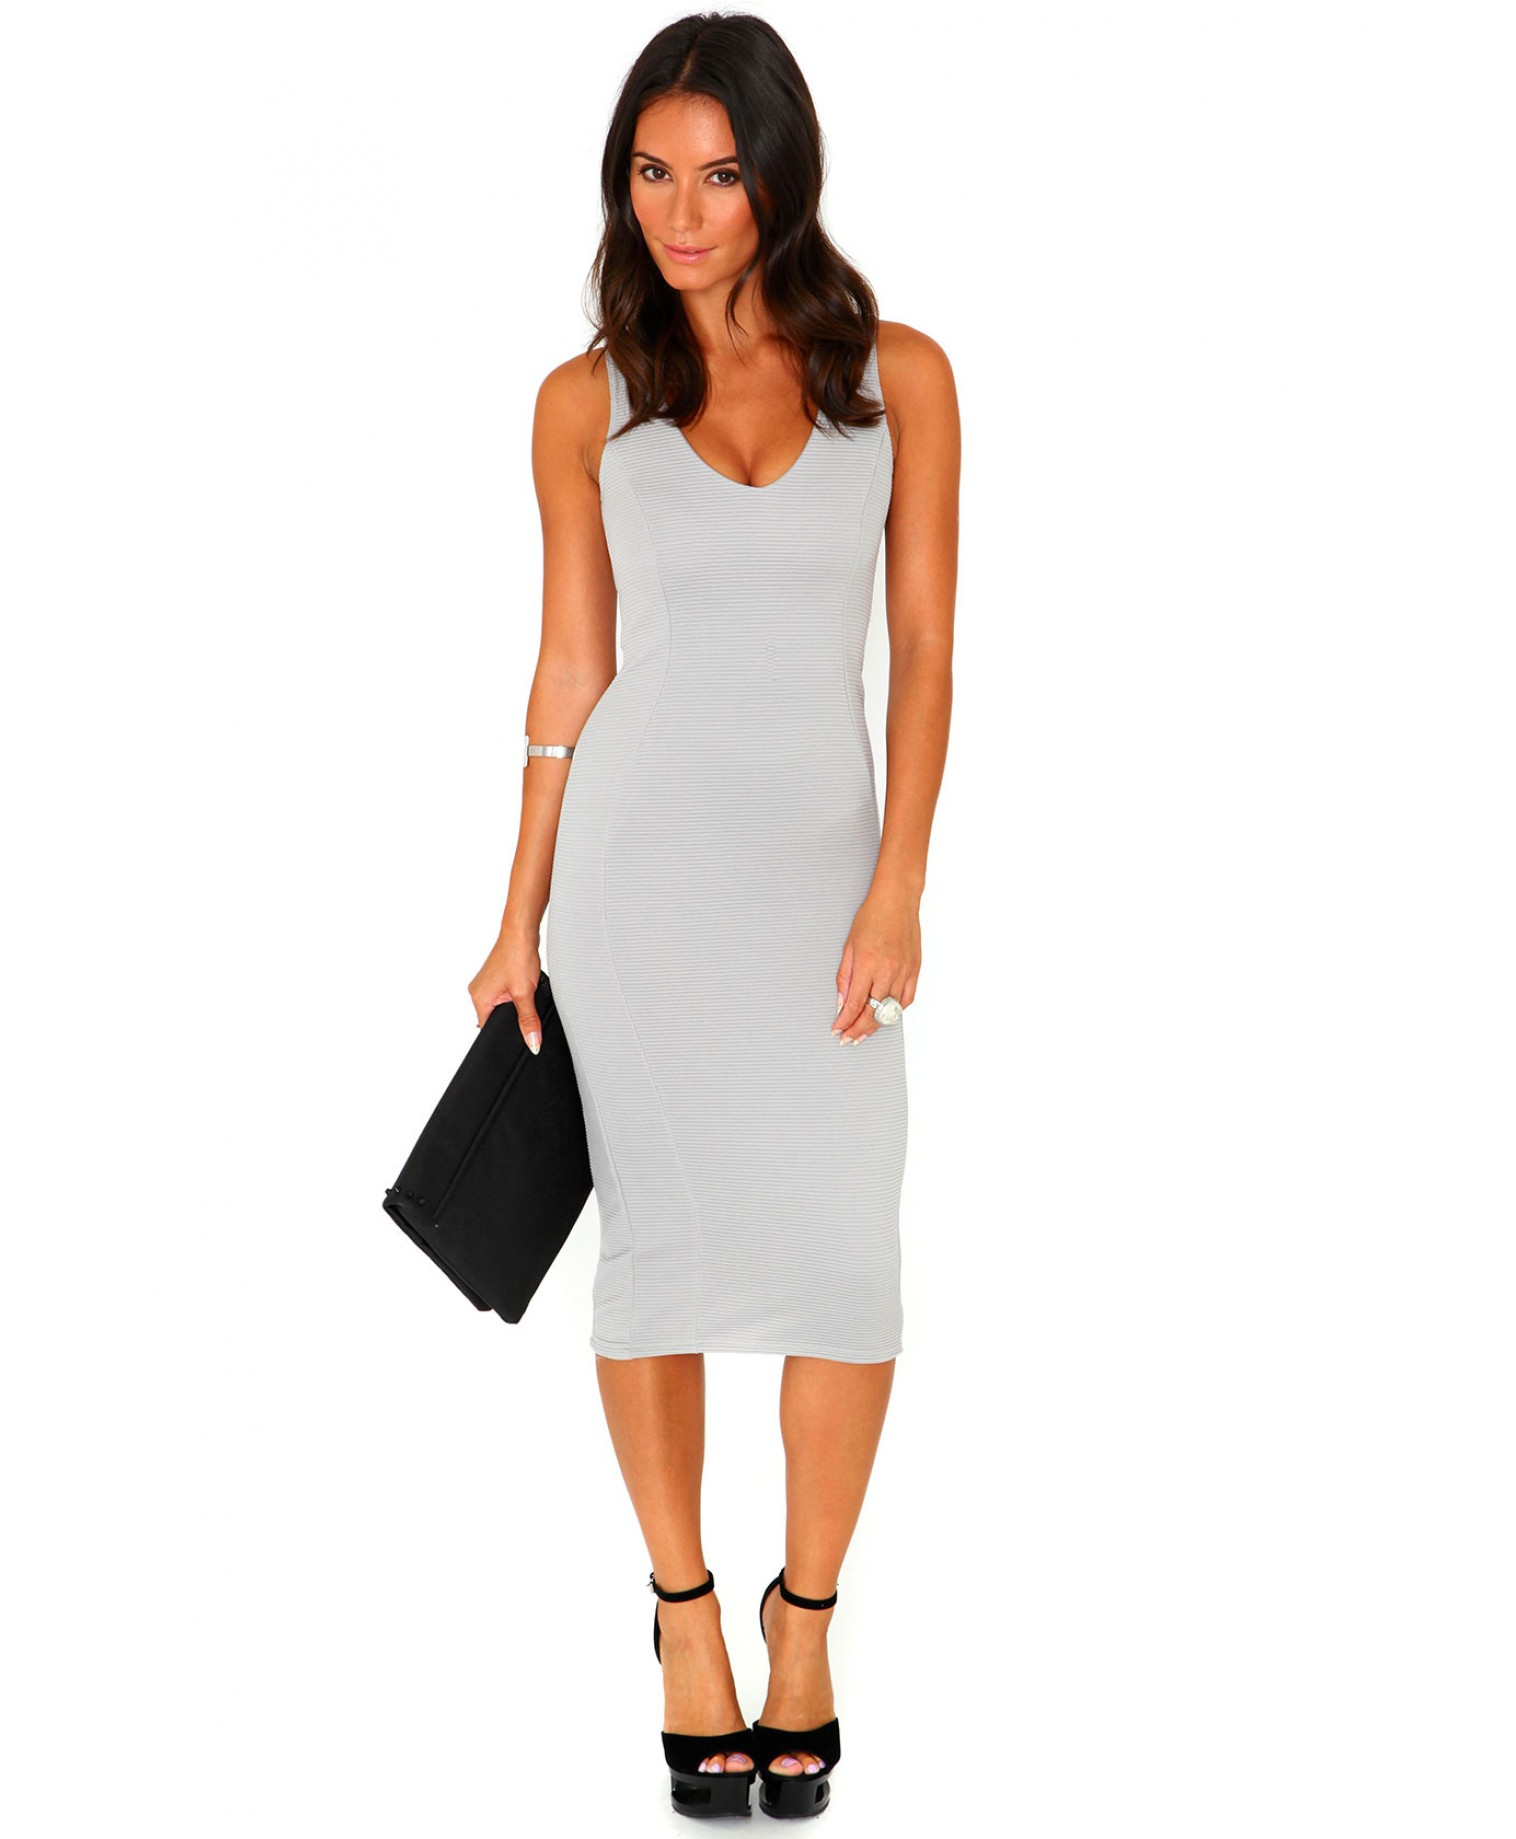 bodycon dress dressed up girl